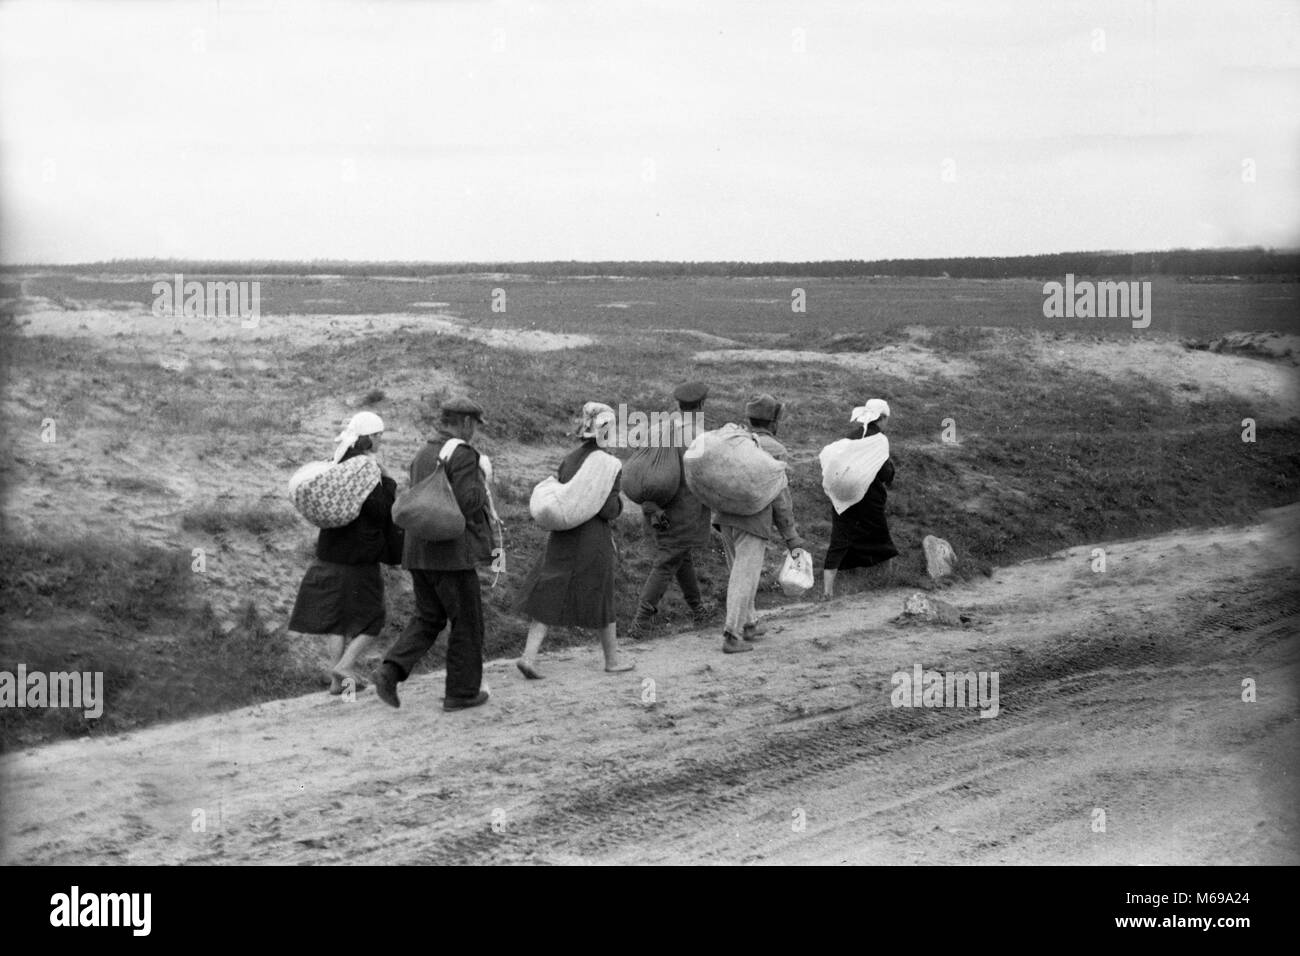 Bare footed refugees July 1941 WW2 German Army Soldiers Passing Russian Civilians, USSR, during Operation Barbarossa - Stock Image